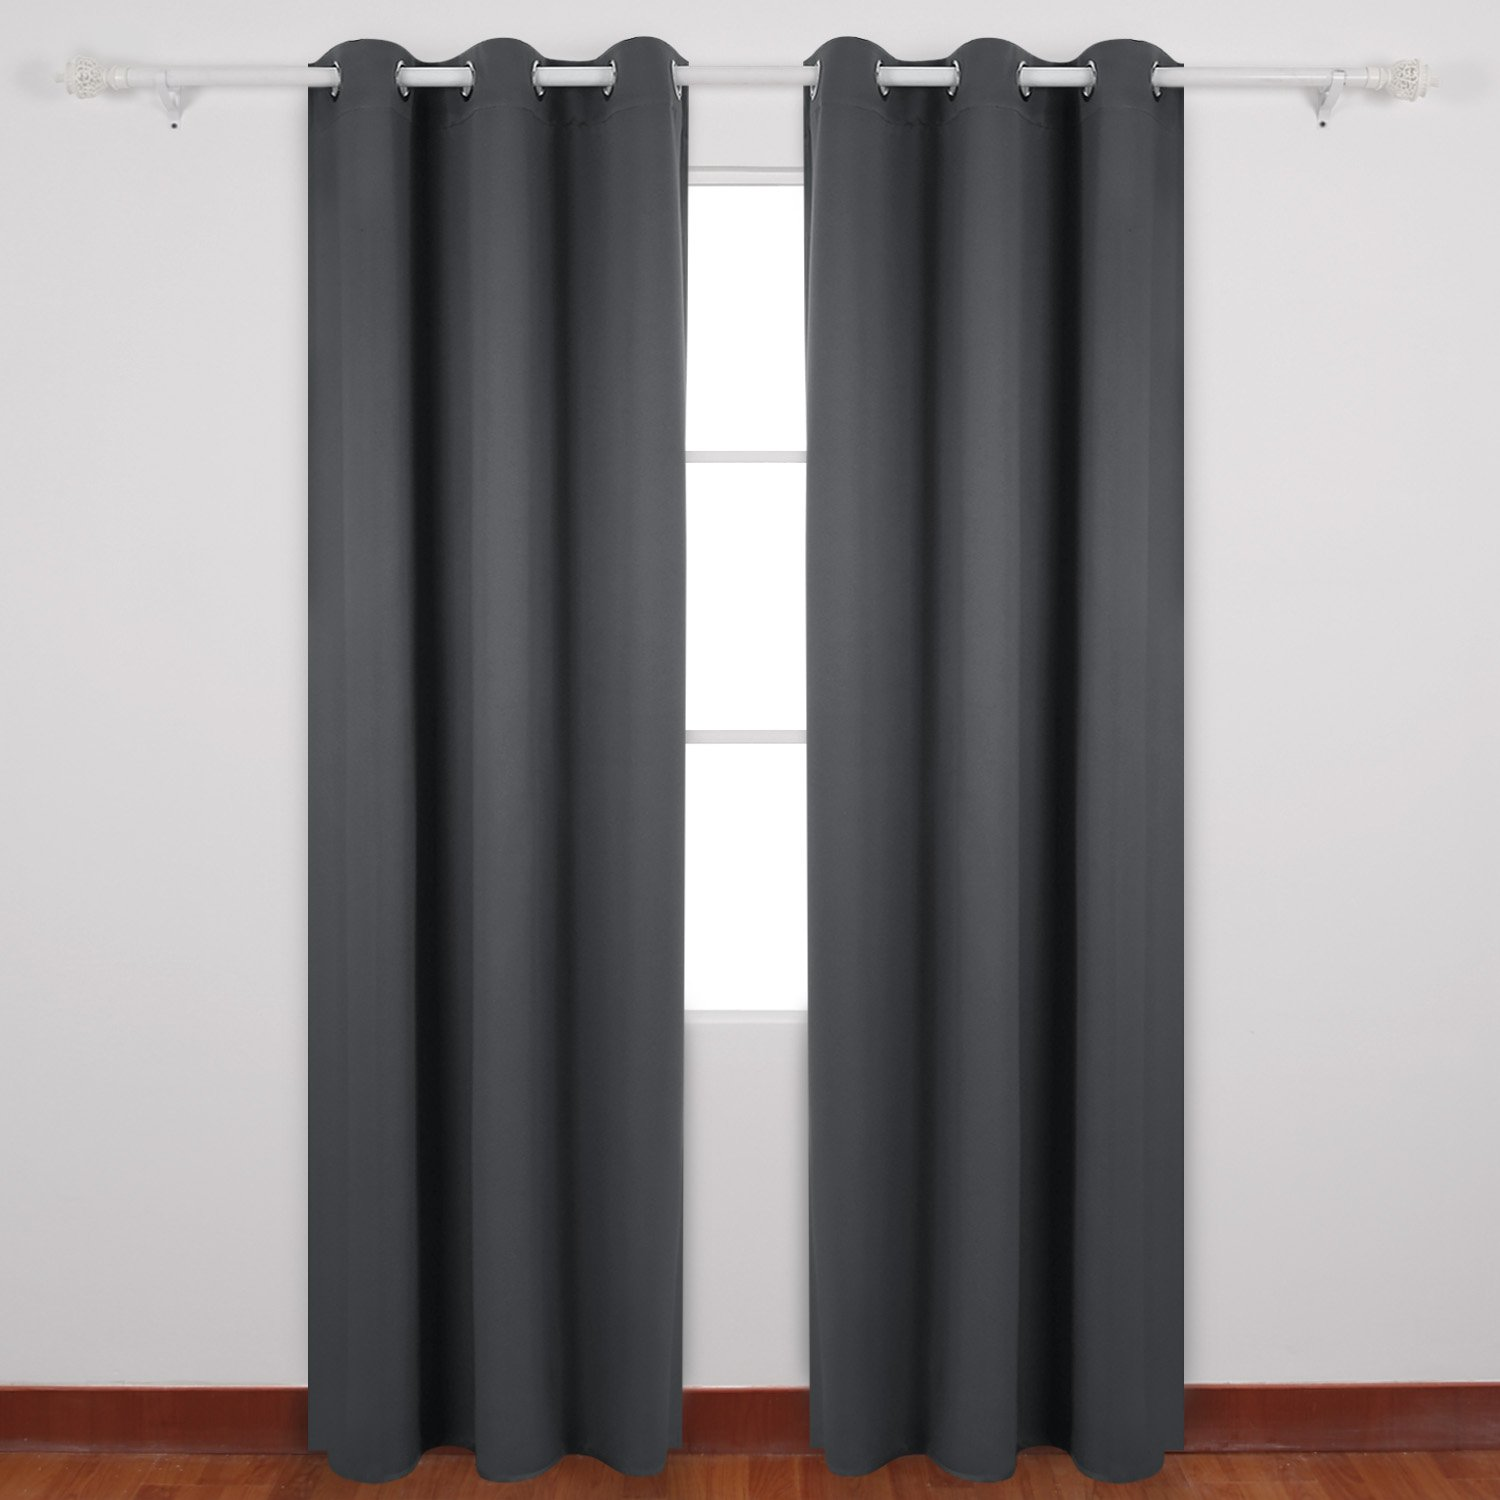 Deconovo Room Darkening Thermal Insulated Blackout Grommet Window Curtain For Living Room